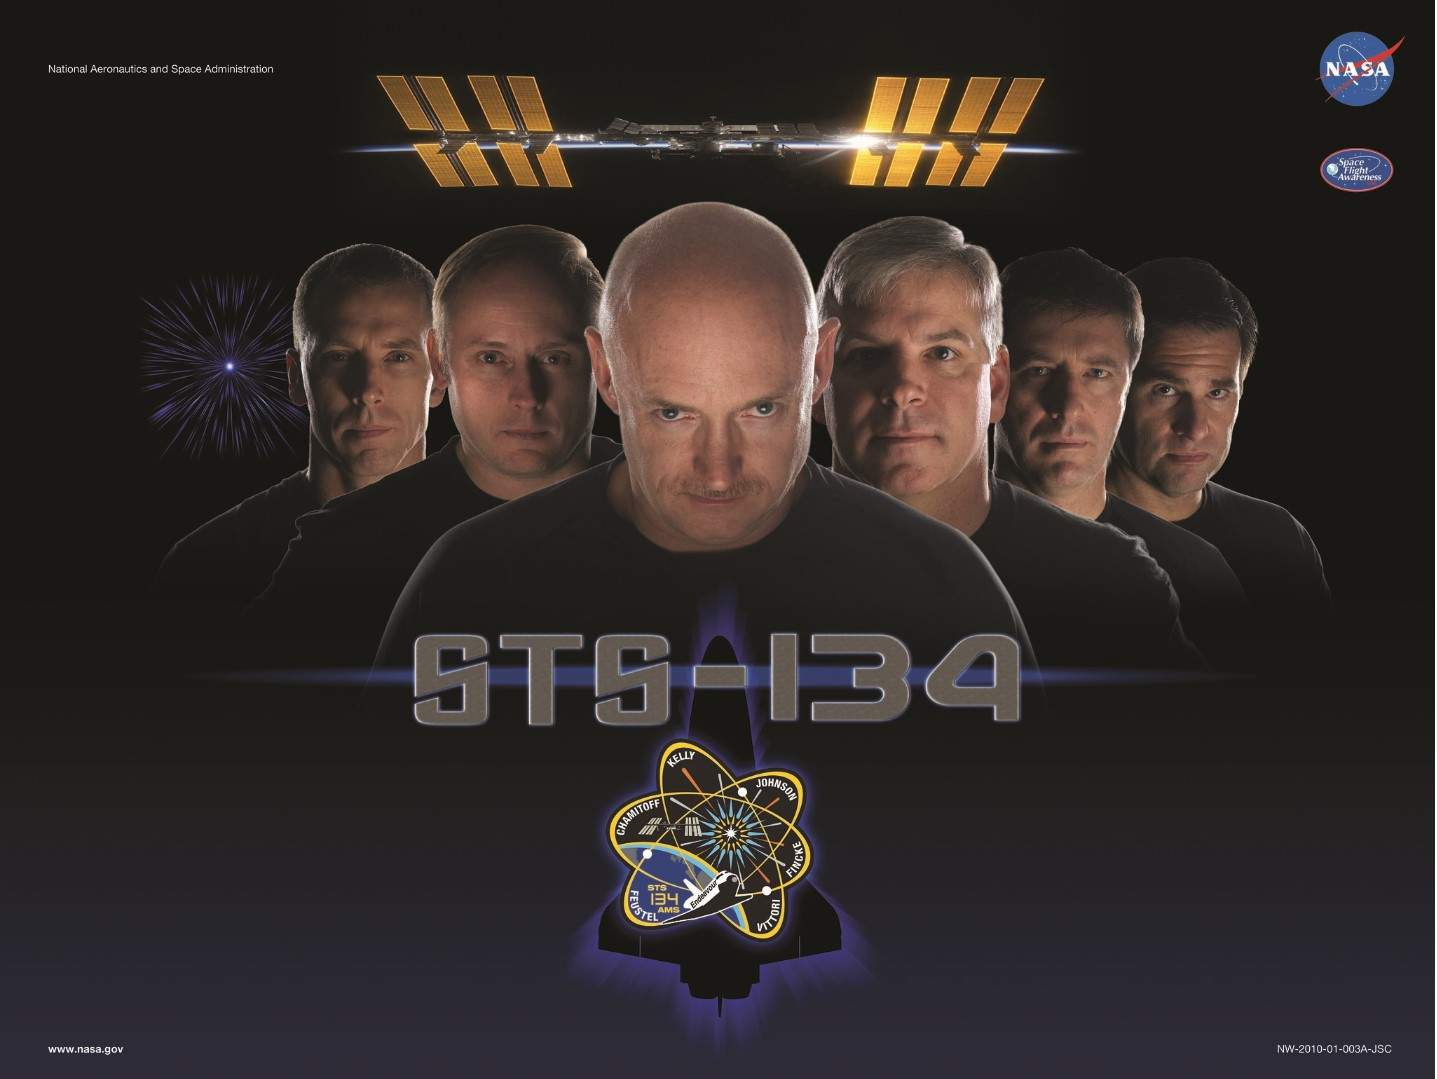 STS-134